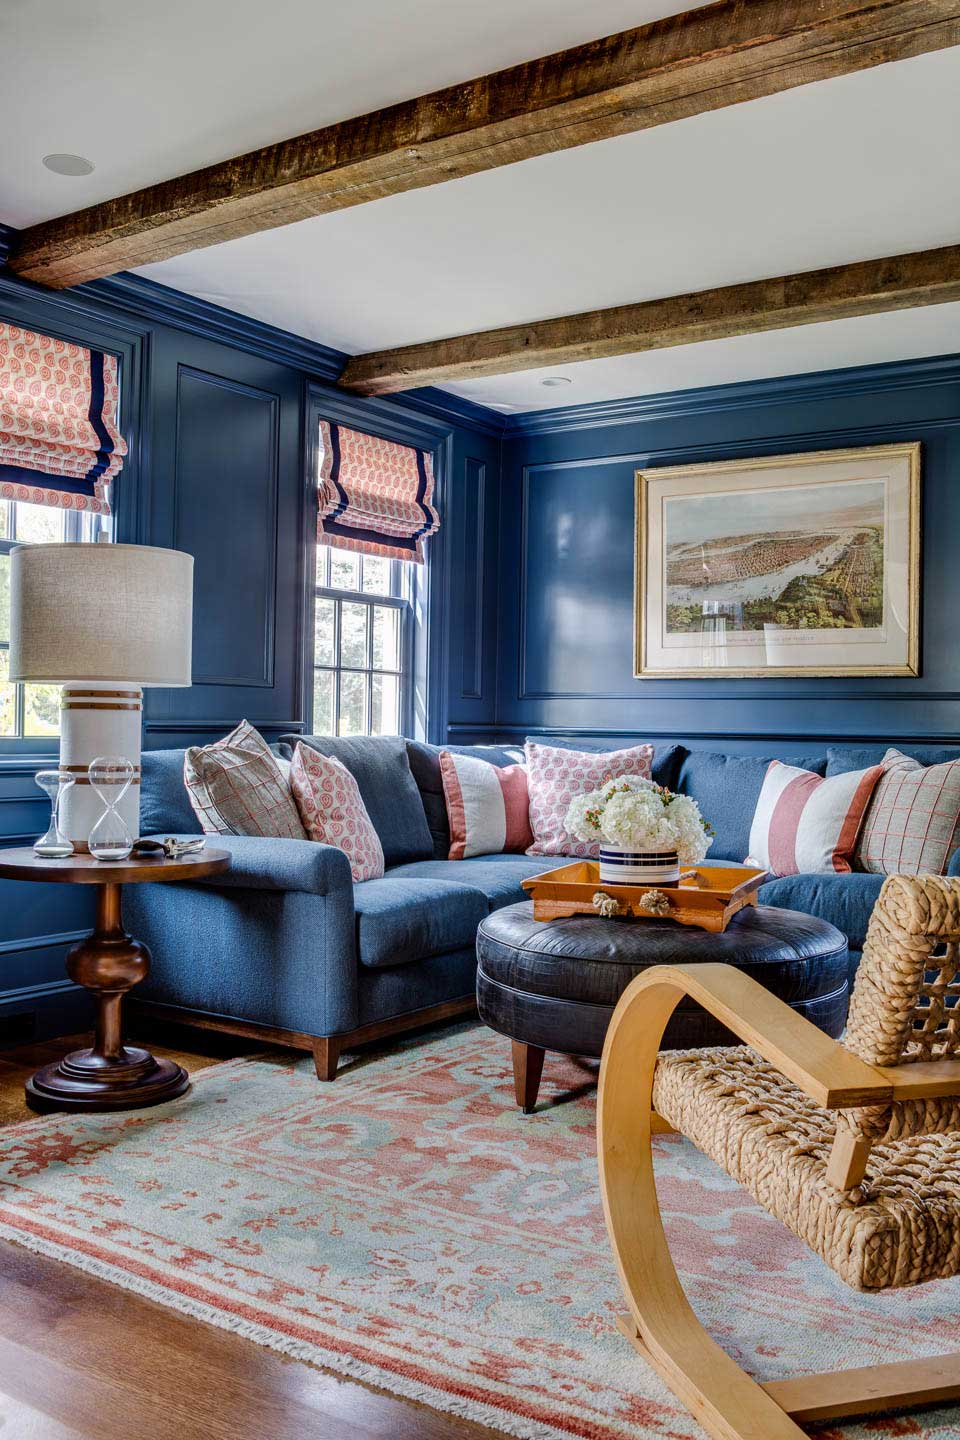 cape house, study, blue walls, blue couch, sectional sofa, roman shades, interior design, digs design, digs